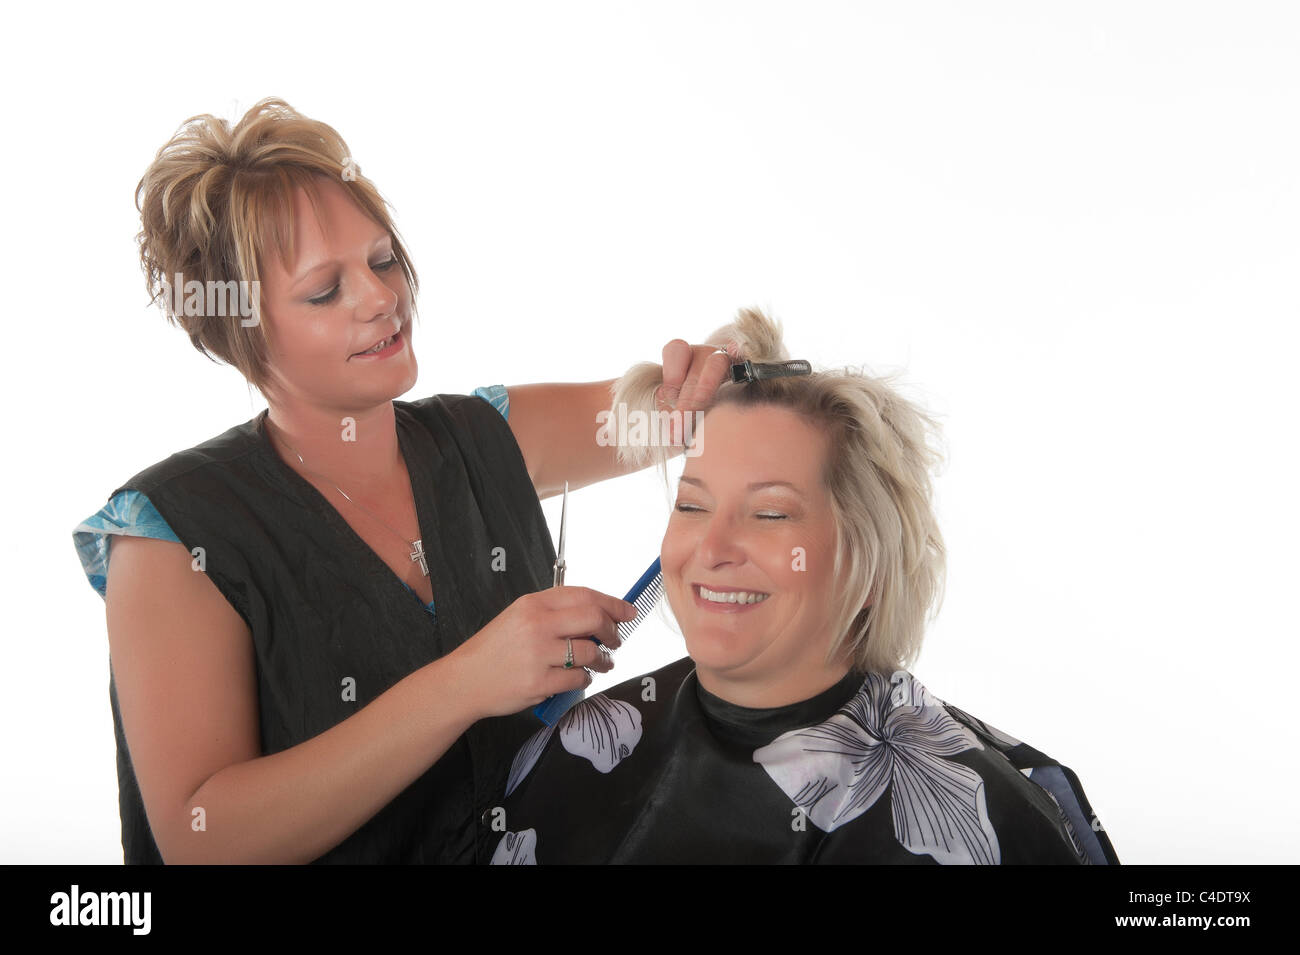 Hair stylist at work - Stock Image